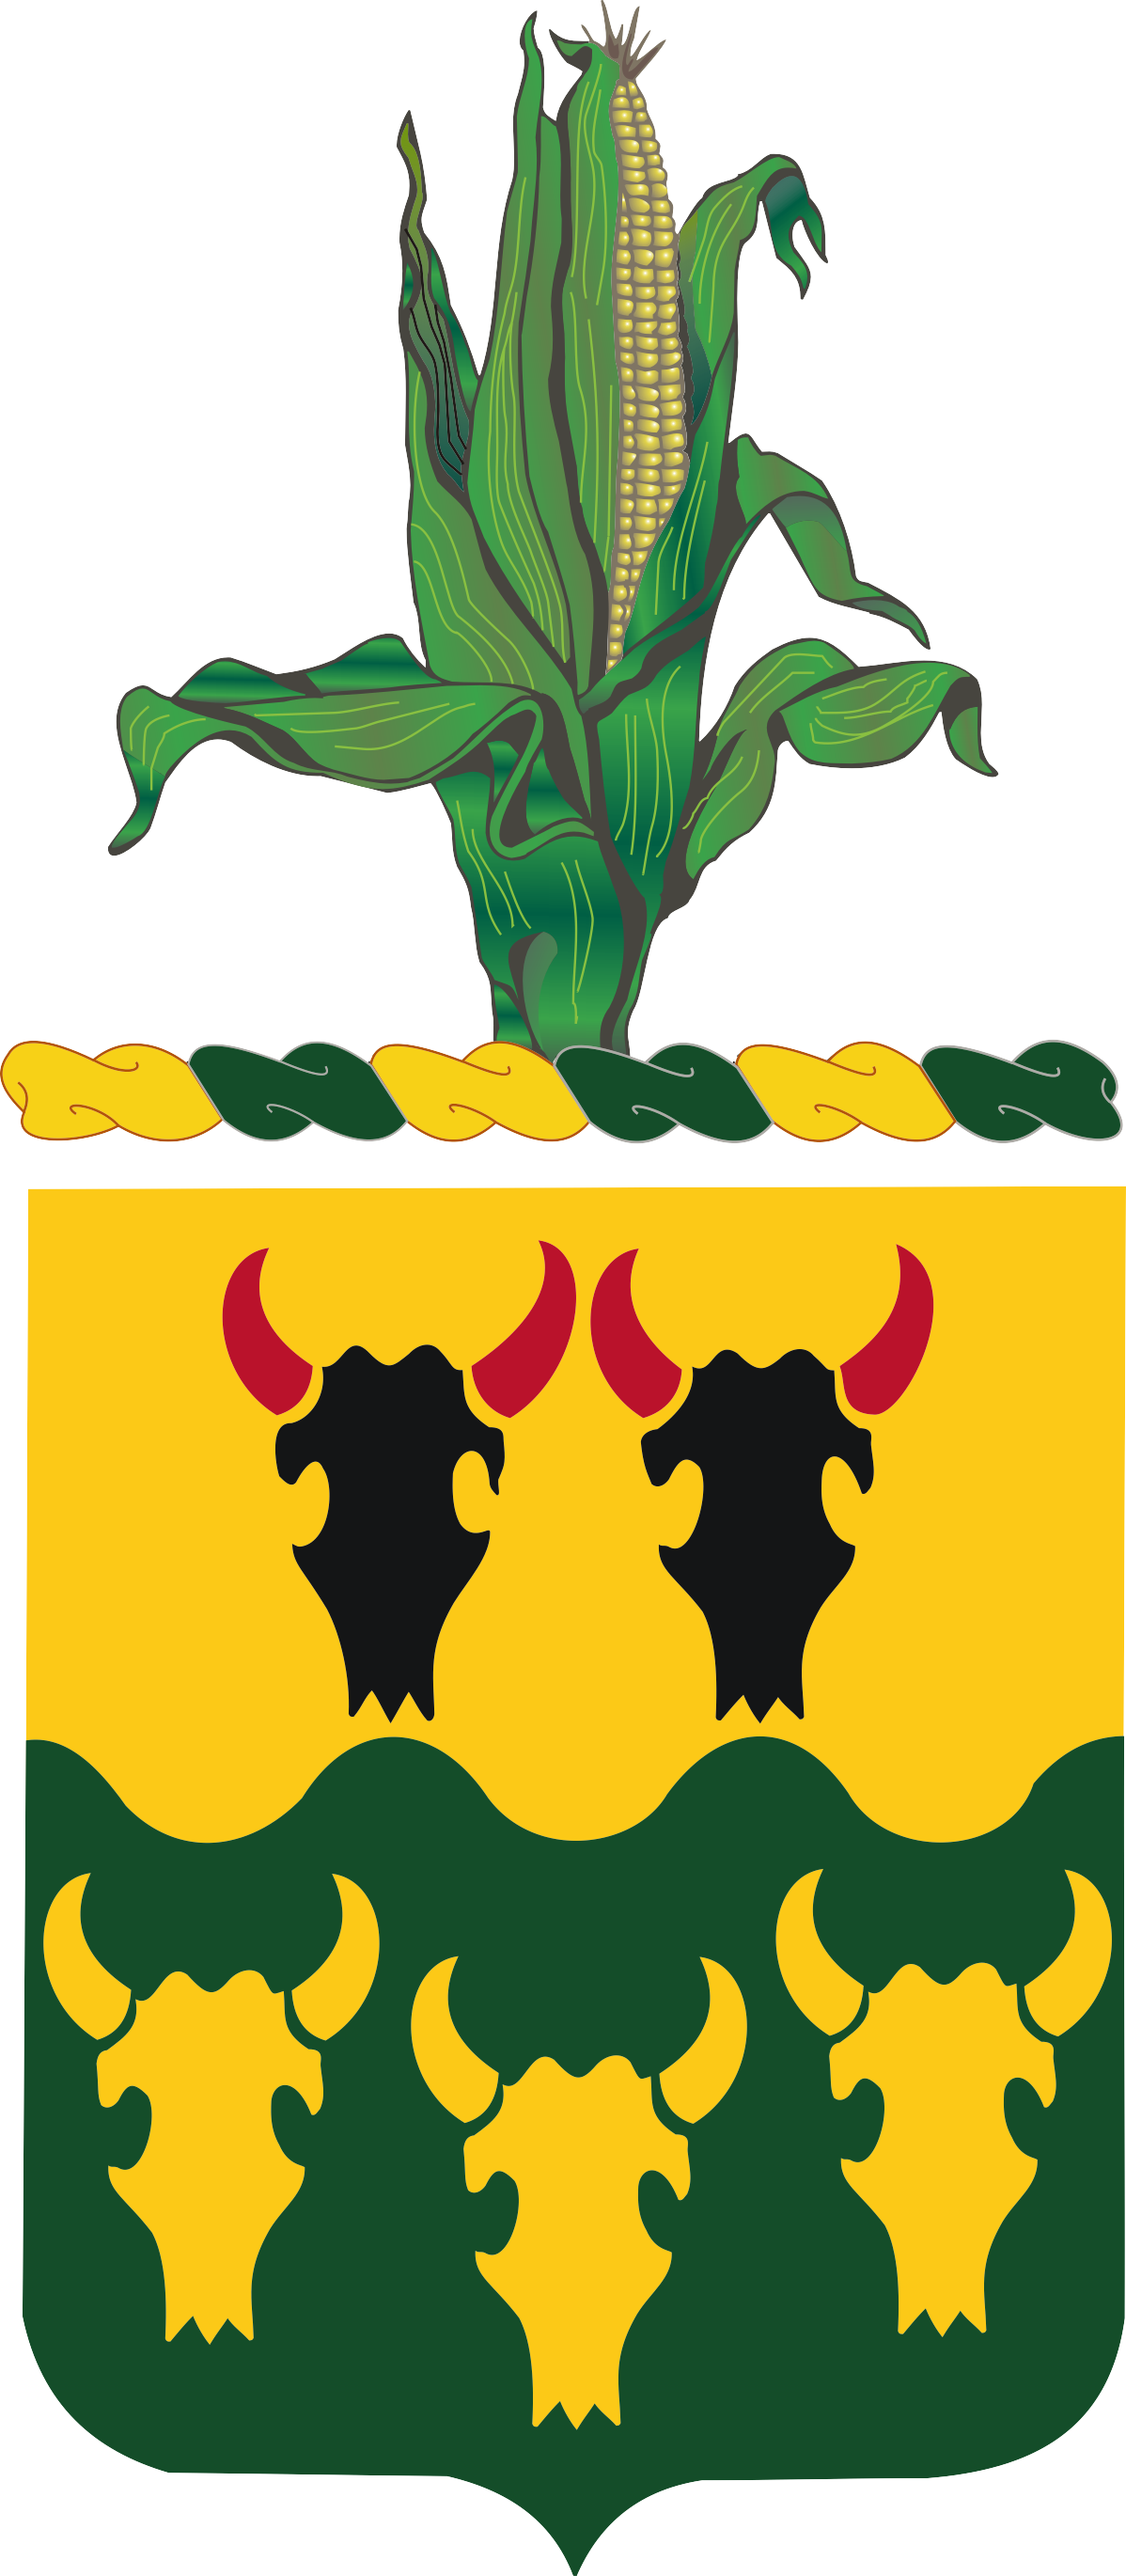 195th Armor Regiment Coat of Arms.png